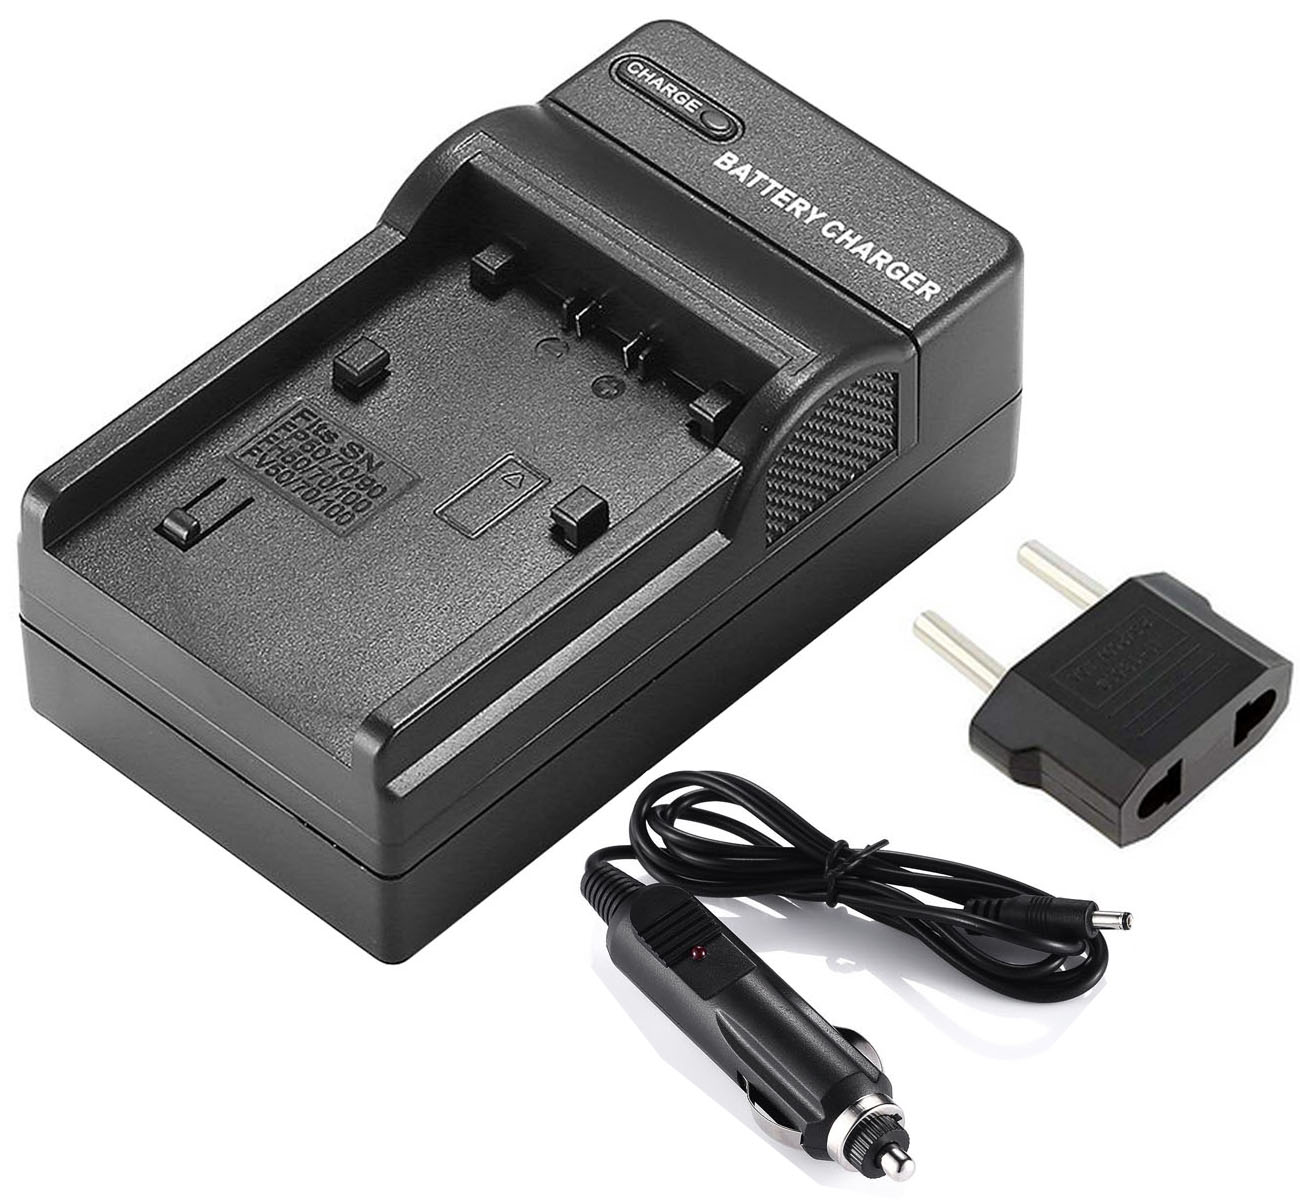 Battery Pack for Sony HDR-CX100E HDR-CX106E Handycam Camcorder HDR-CX105E